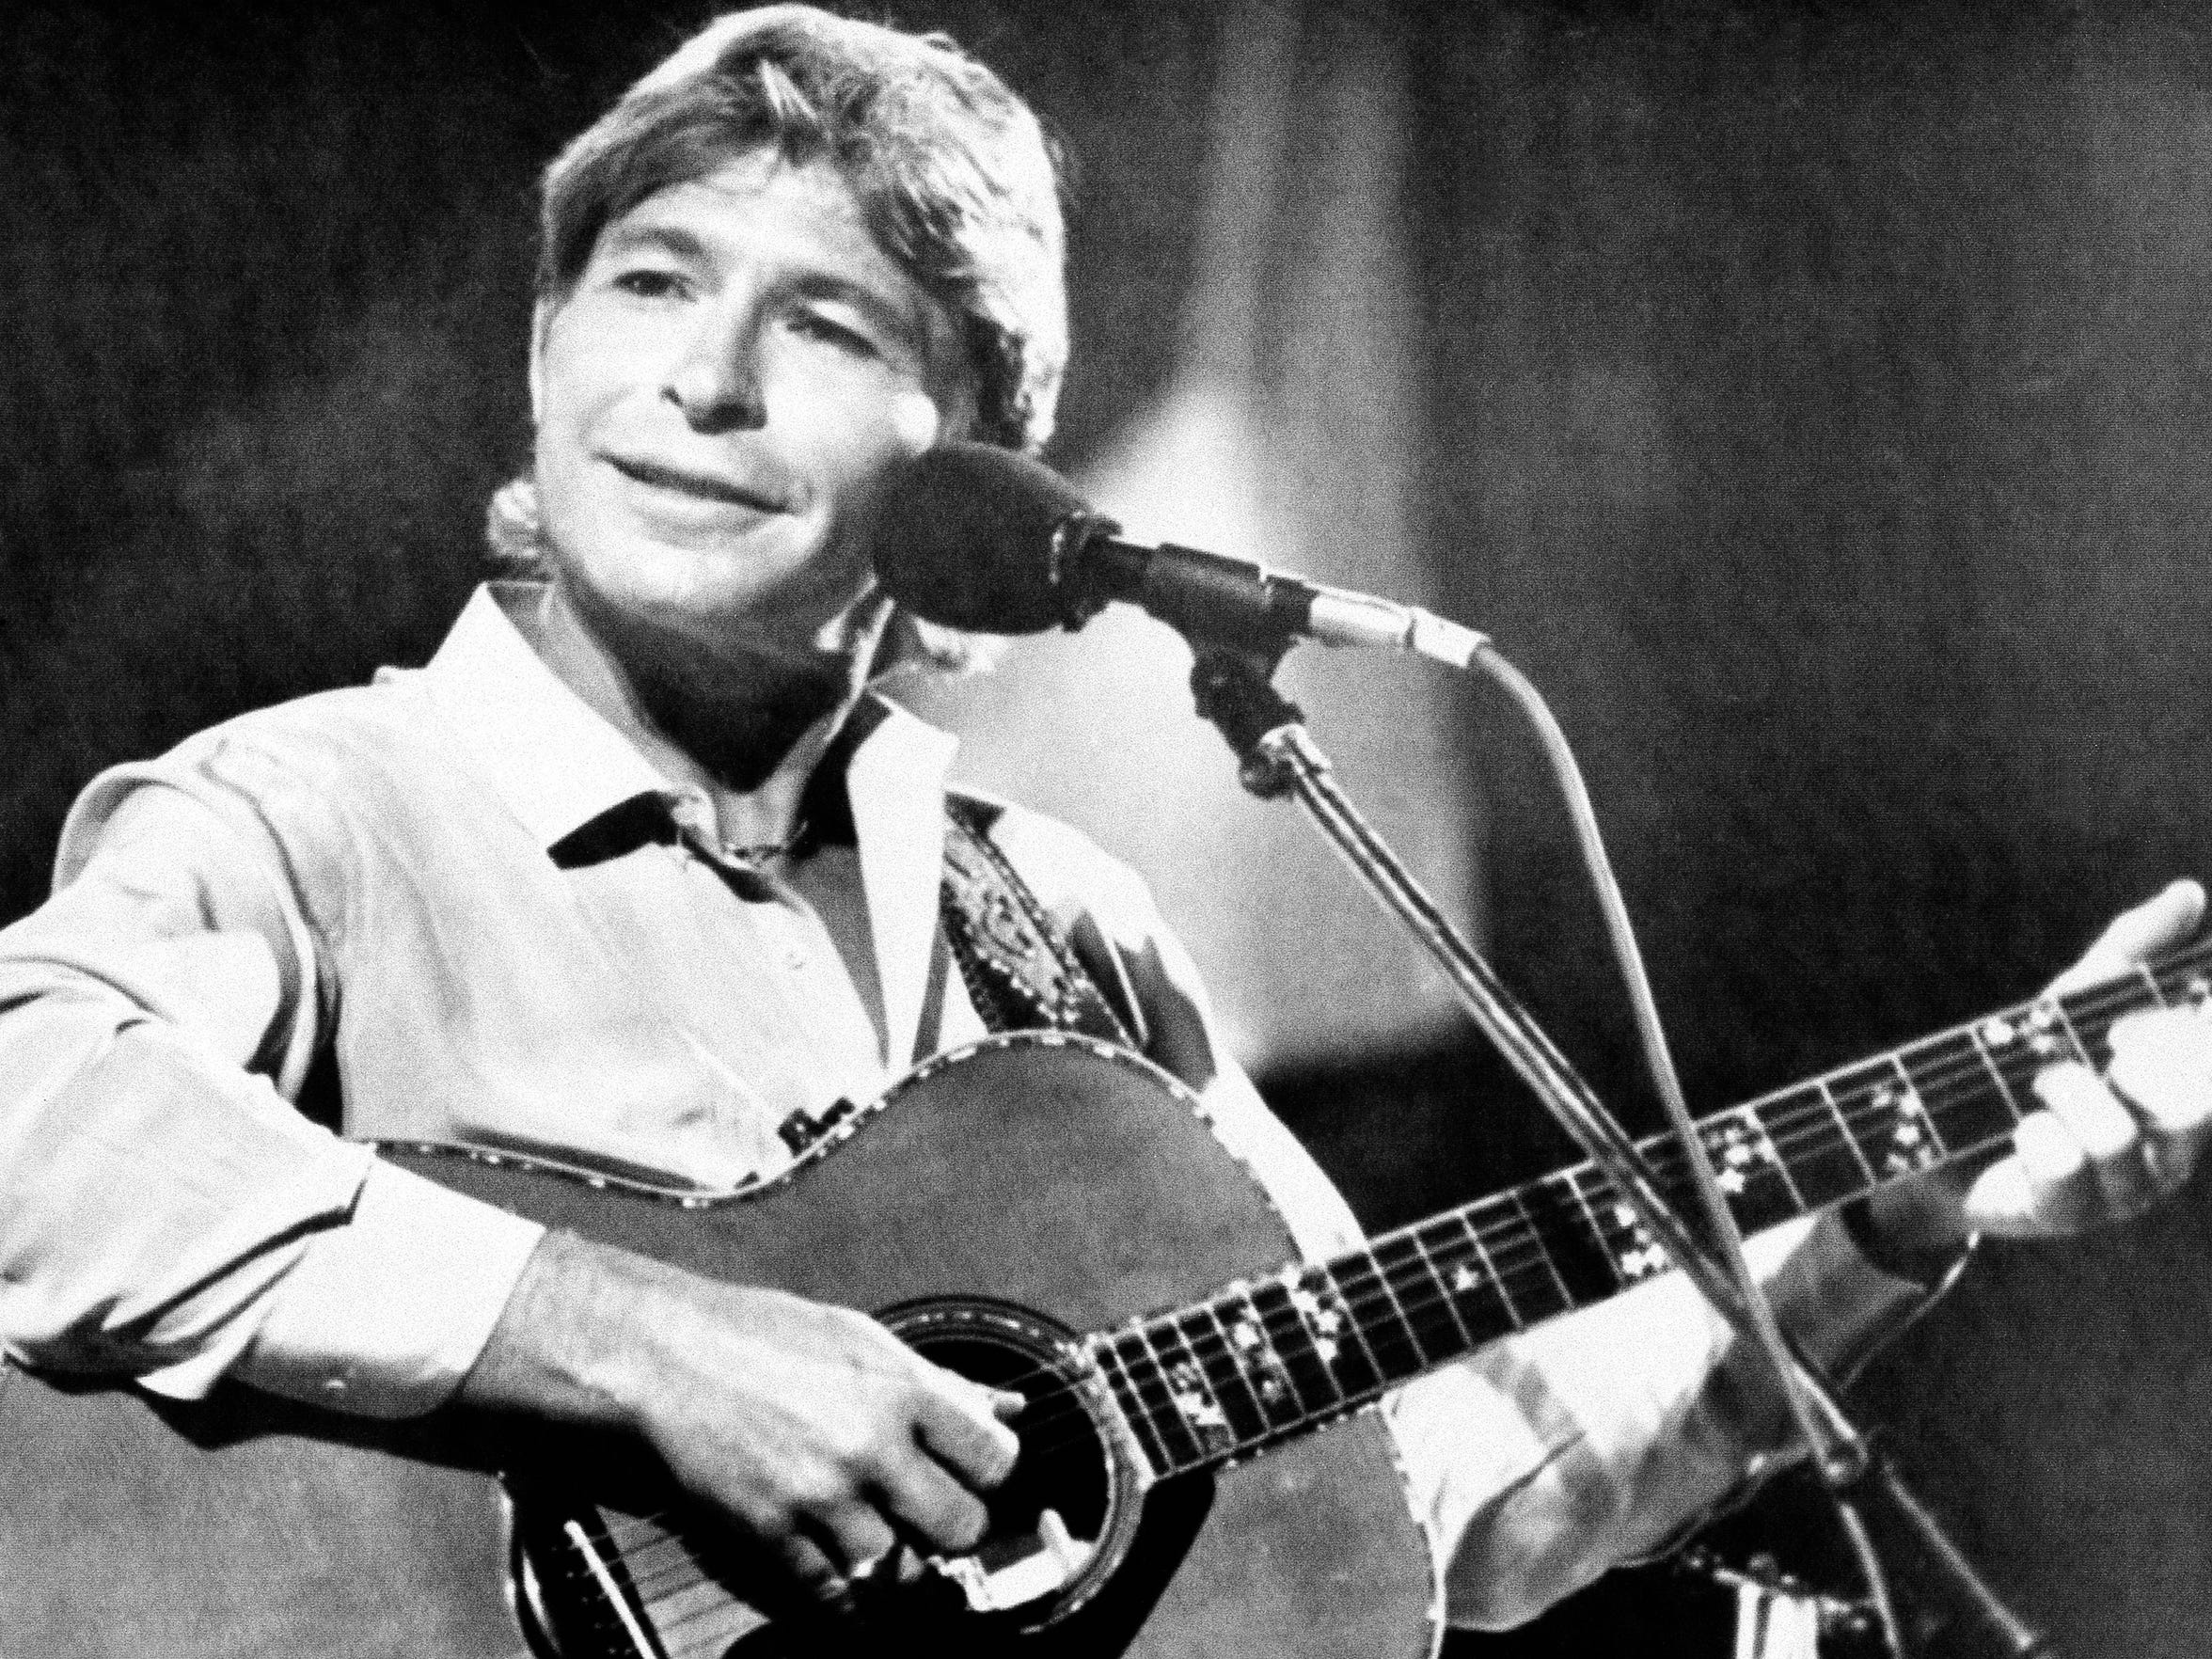 American singer John Denver appears during his concert at the Festival de la Cancion music festival in Vina del Mar, Chile, on Feb. 14, 1985.  Denver was killed in a small-airplane crash 12 years later.